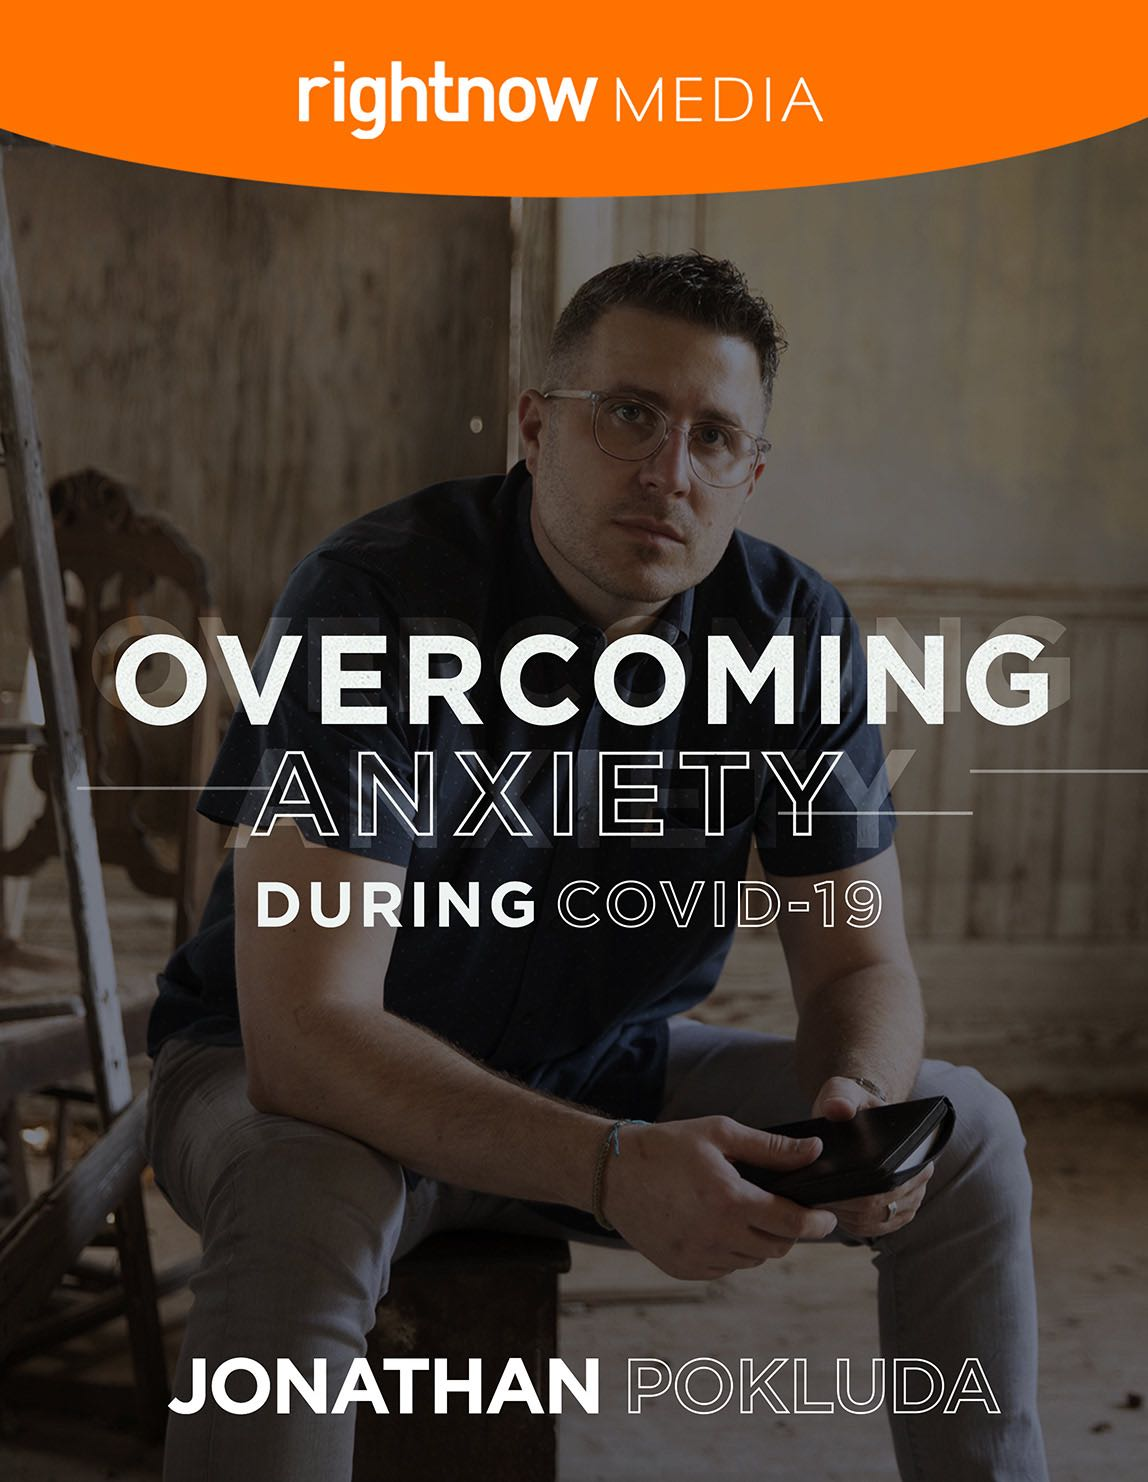 Overcoming Anxiety During COVID-19 : Jonathan Pokluda : RightNow Media